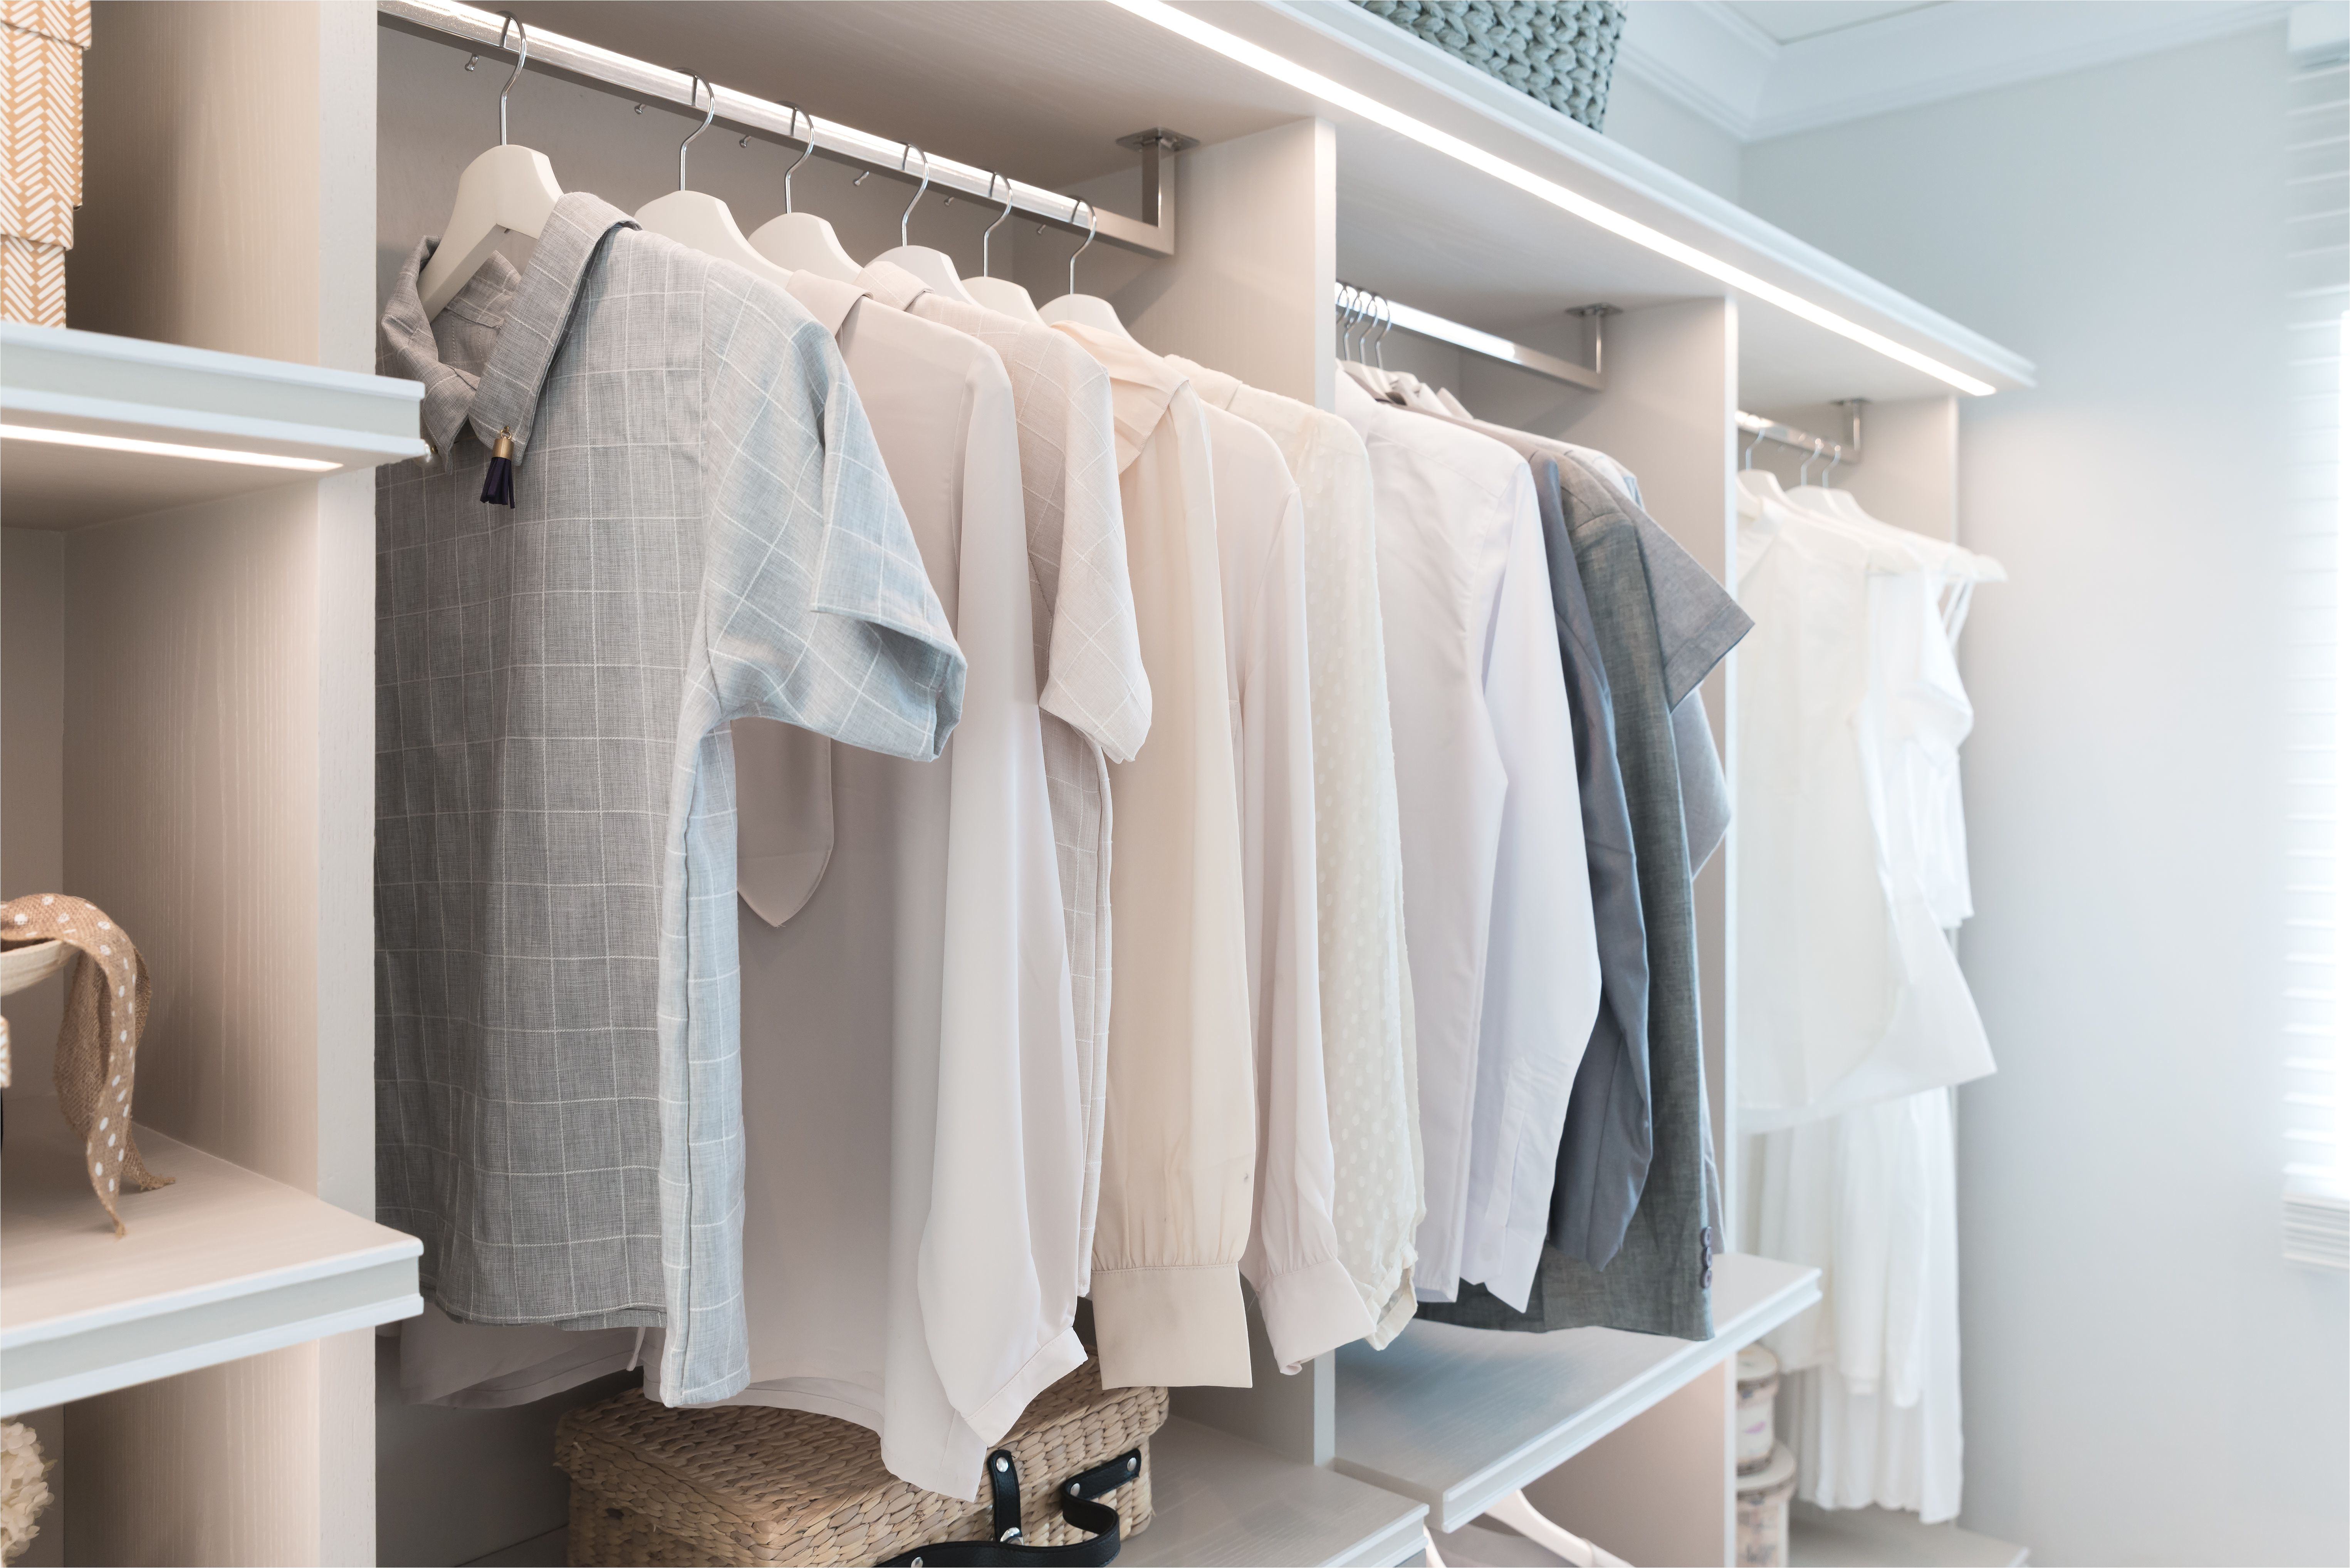 Stand Up Coat Rack Target the 9 Best Clothes Steamers to Buy In 2018